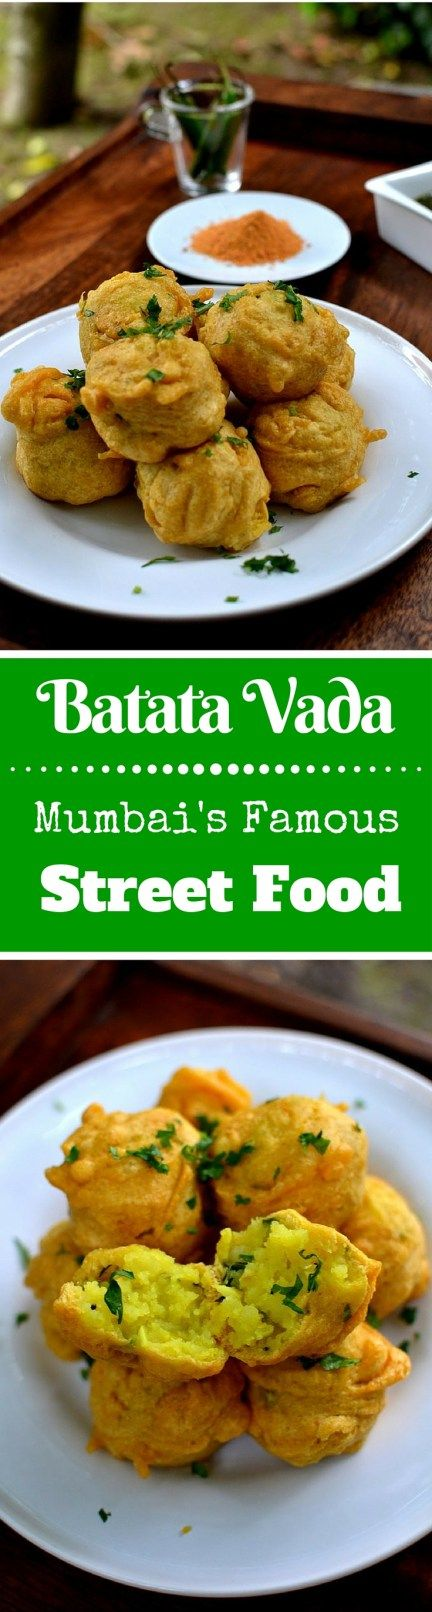 Mumbai-style Batata Vada | Spice in the City